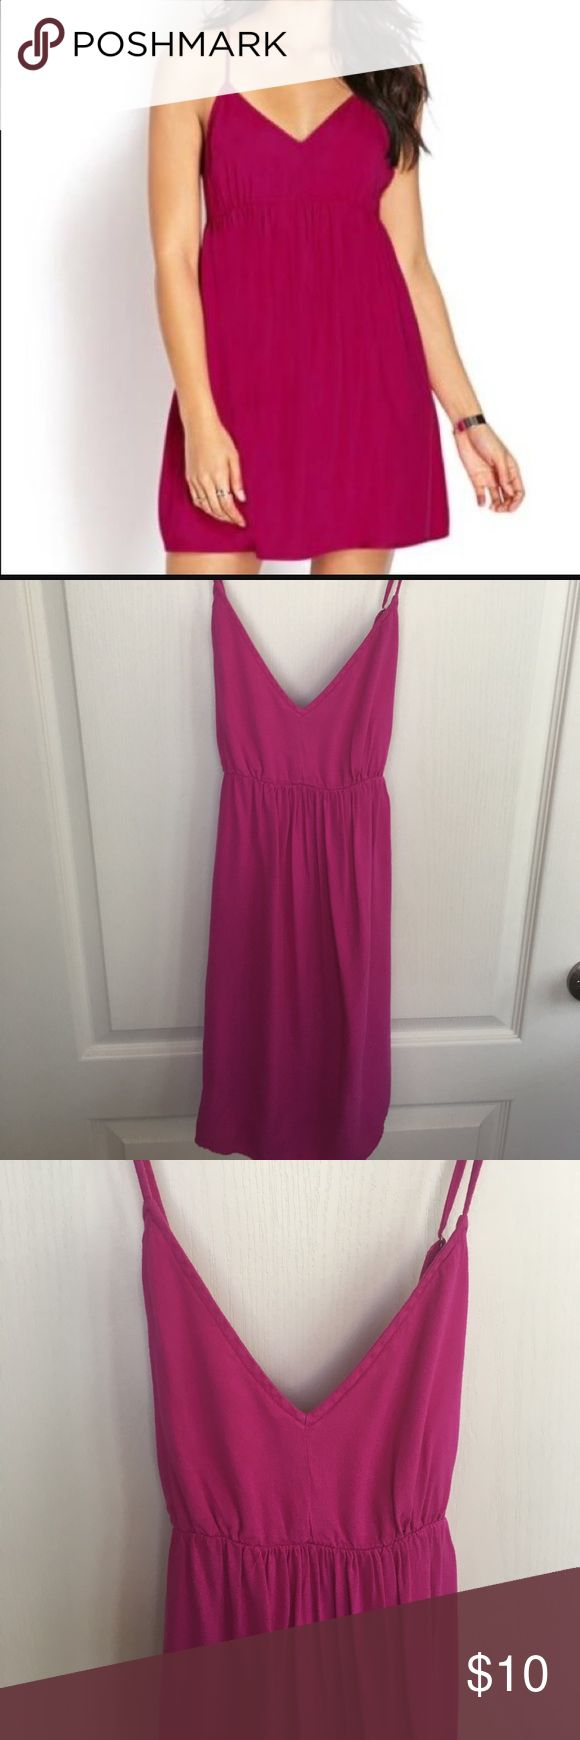 Forever 21 strappy back sundress NWOT hot pink sundress with open back. 100% rayon Forever 21 Dresses Mini